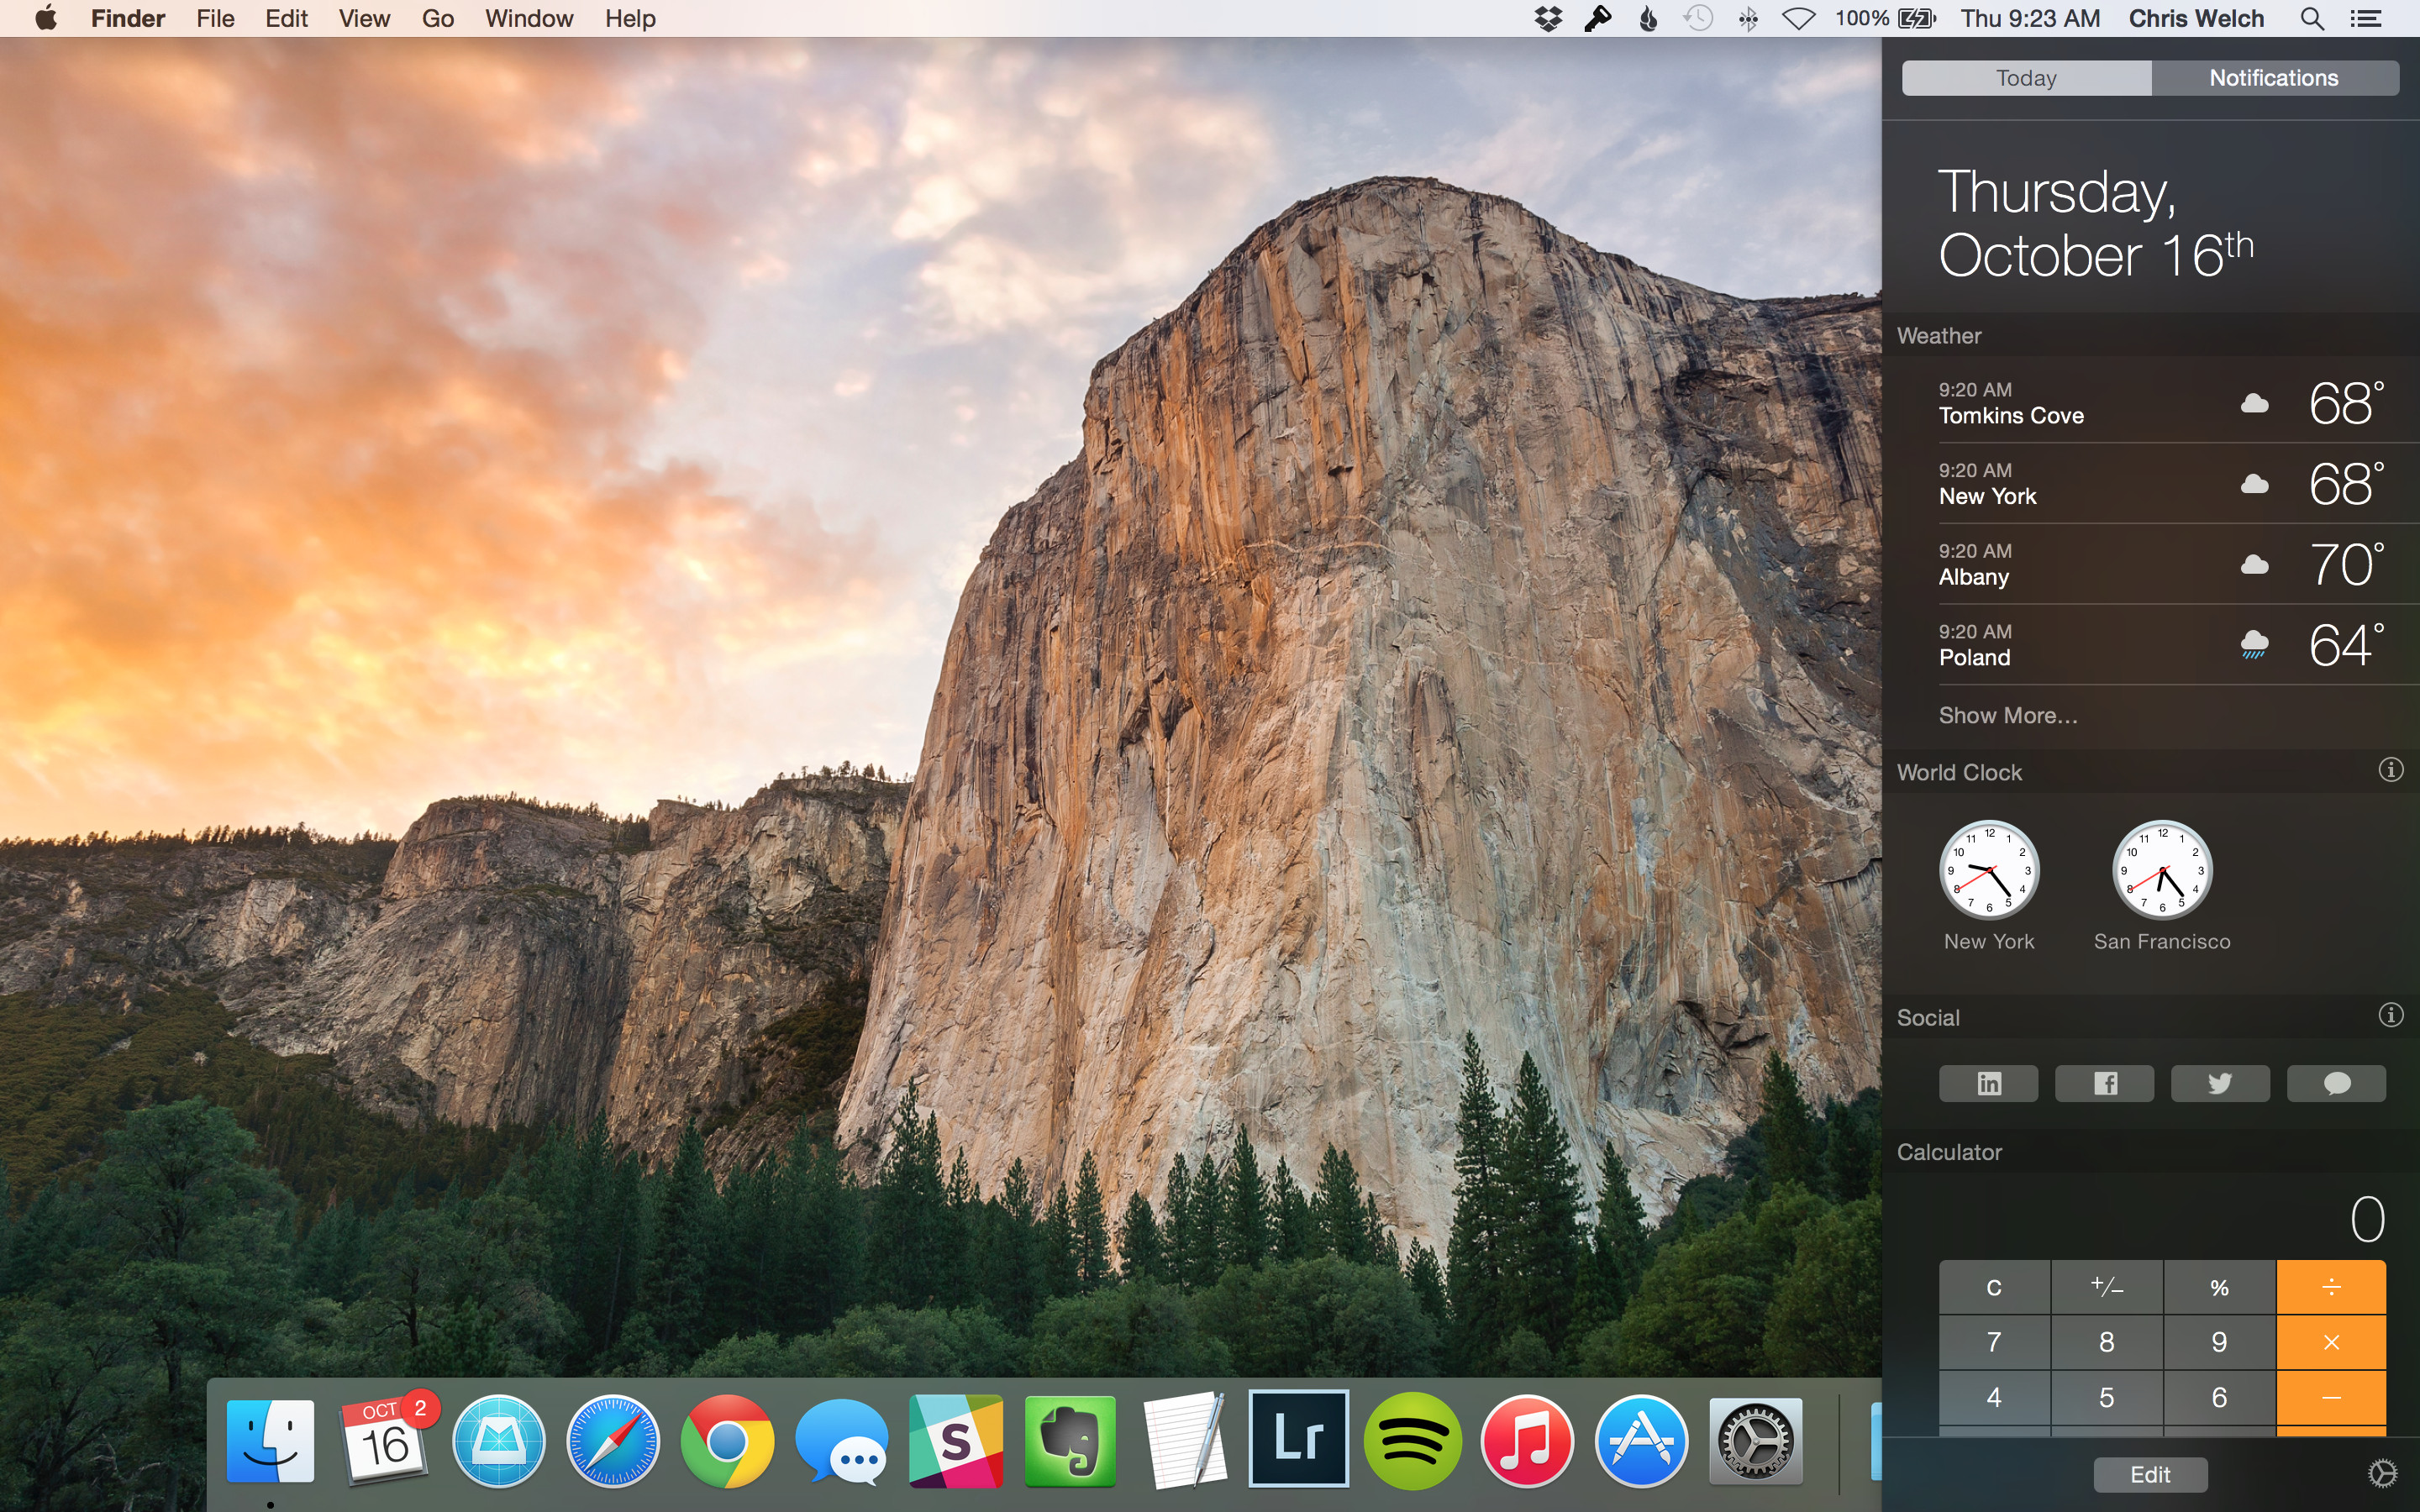 Mac Os X   Yosemite Notification Center